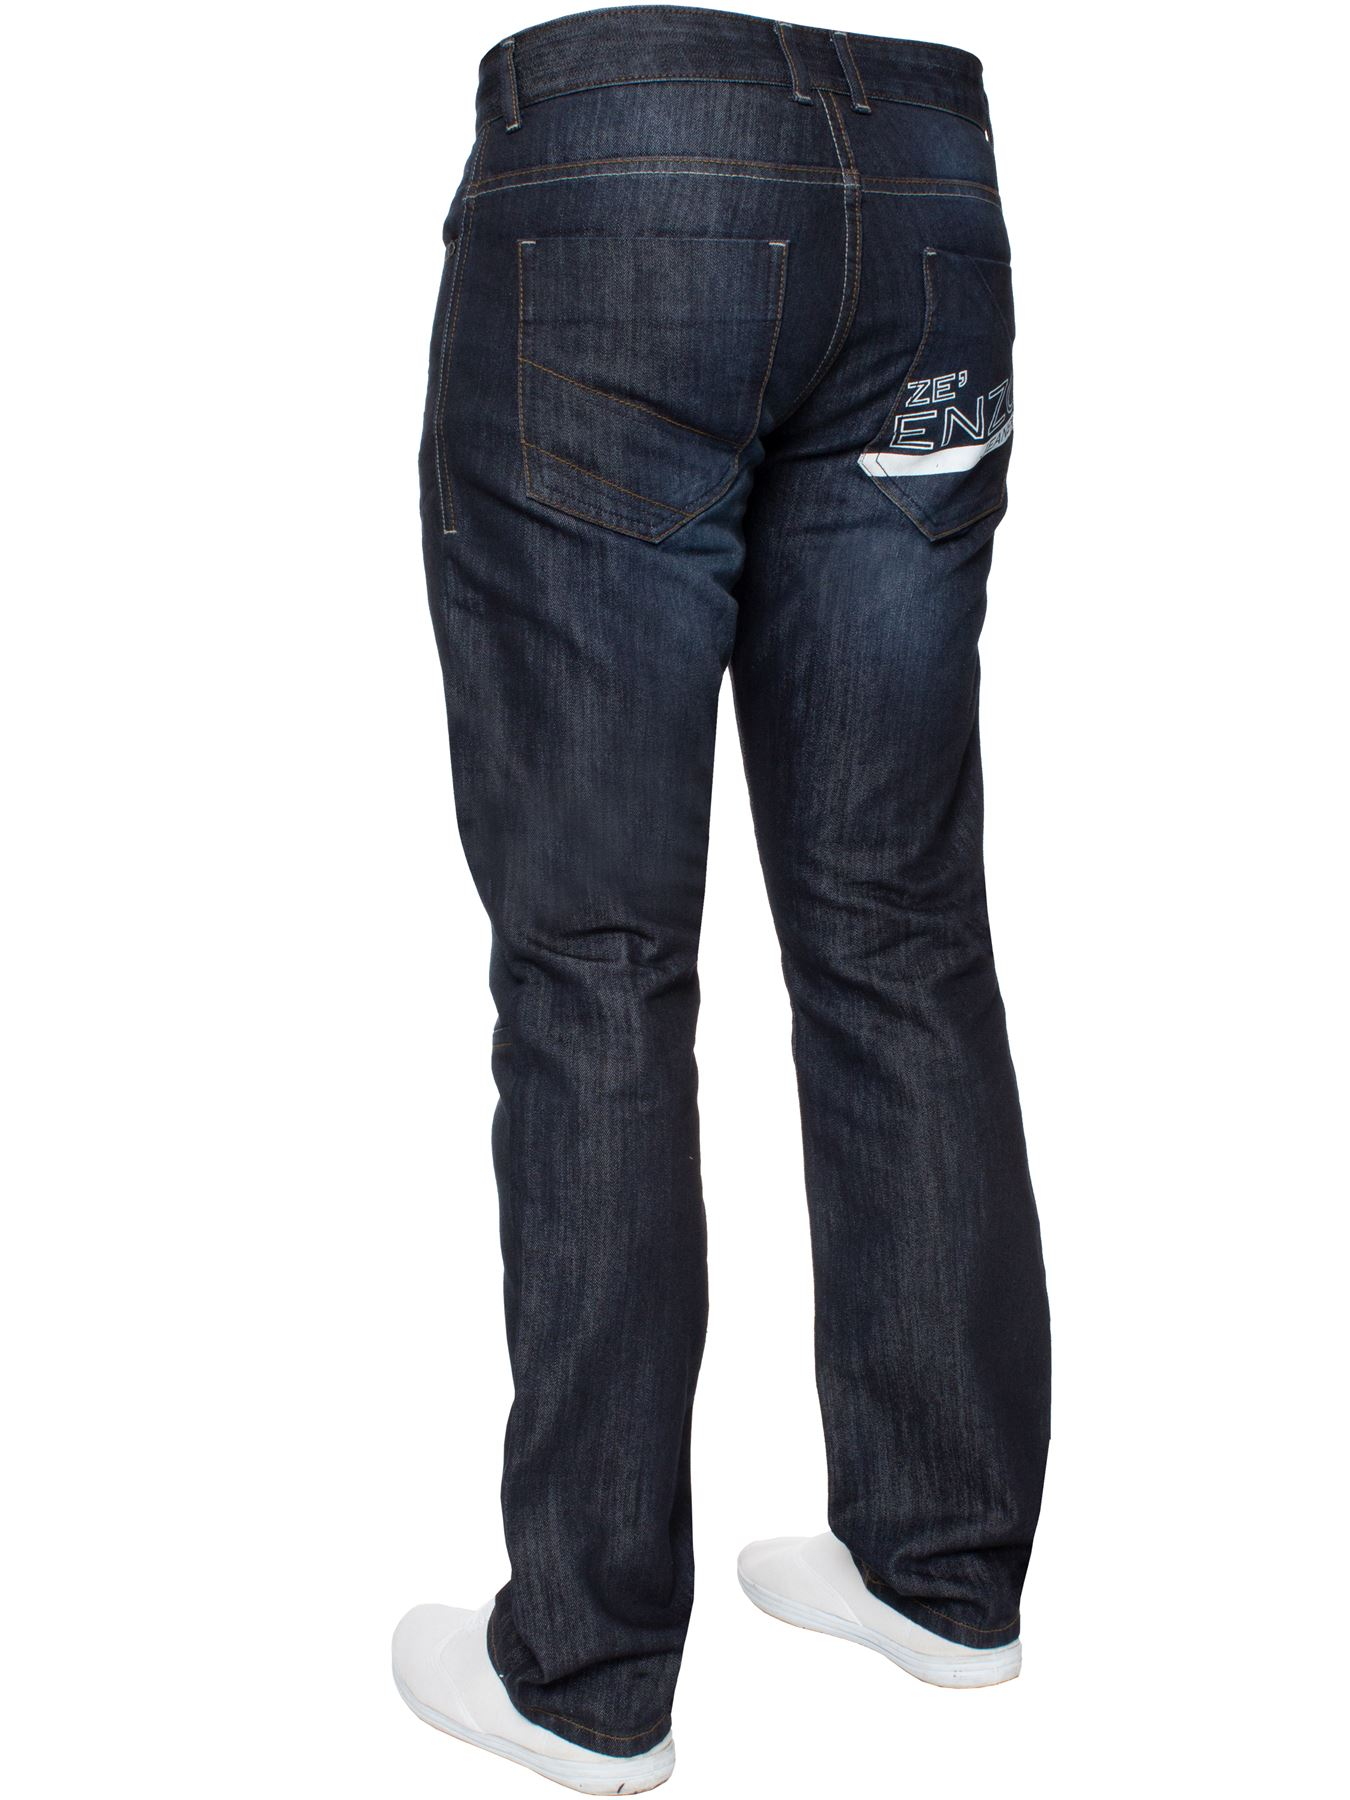 Enzo-Mens-Straight-Jeans-Regular-Leg-Designer-Work-Denim-Pants-All-Waists-Sizes thumbnail 35